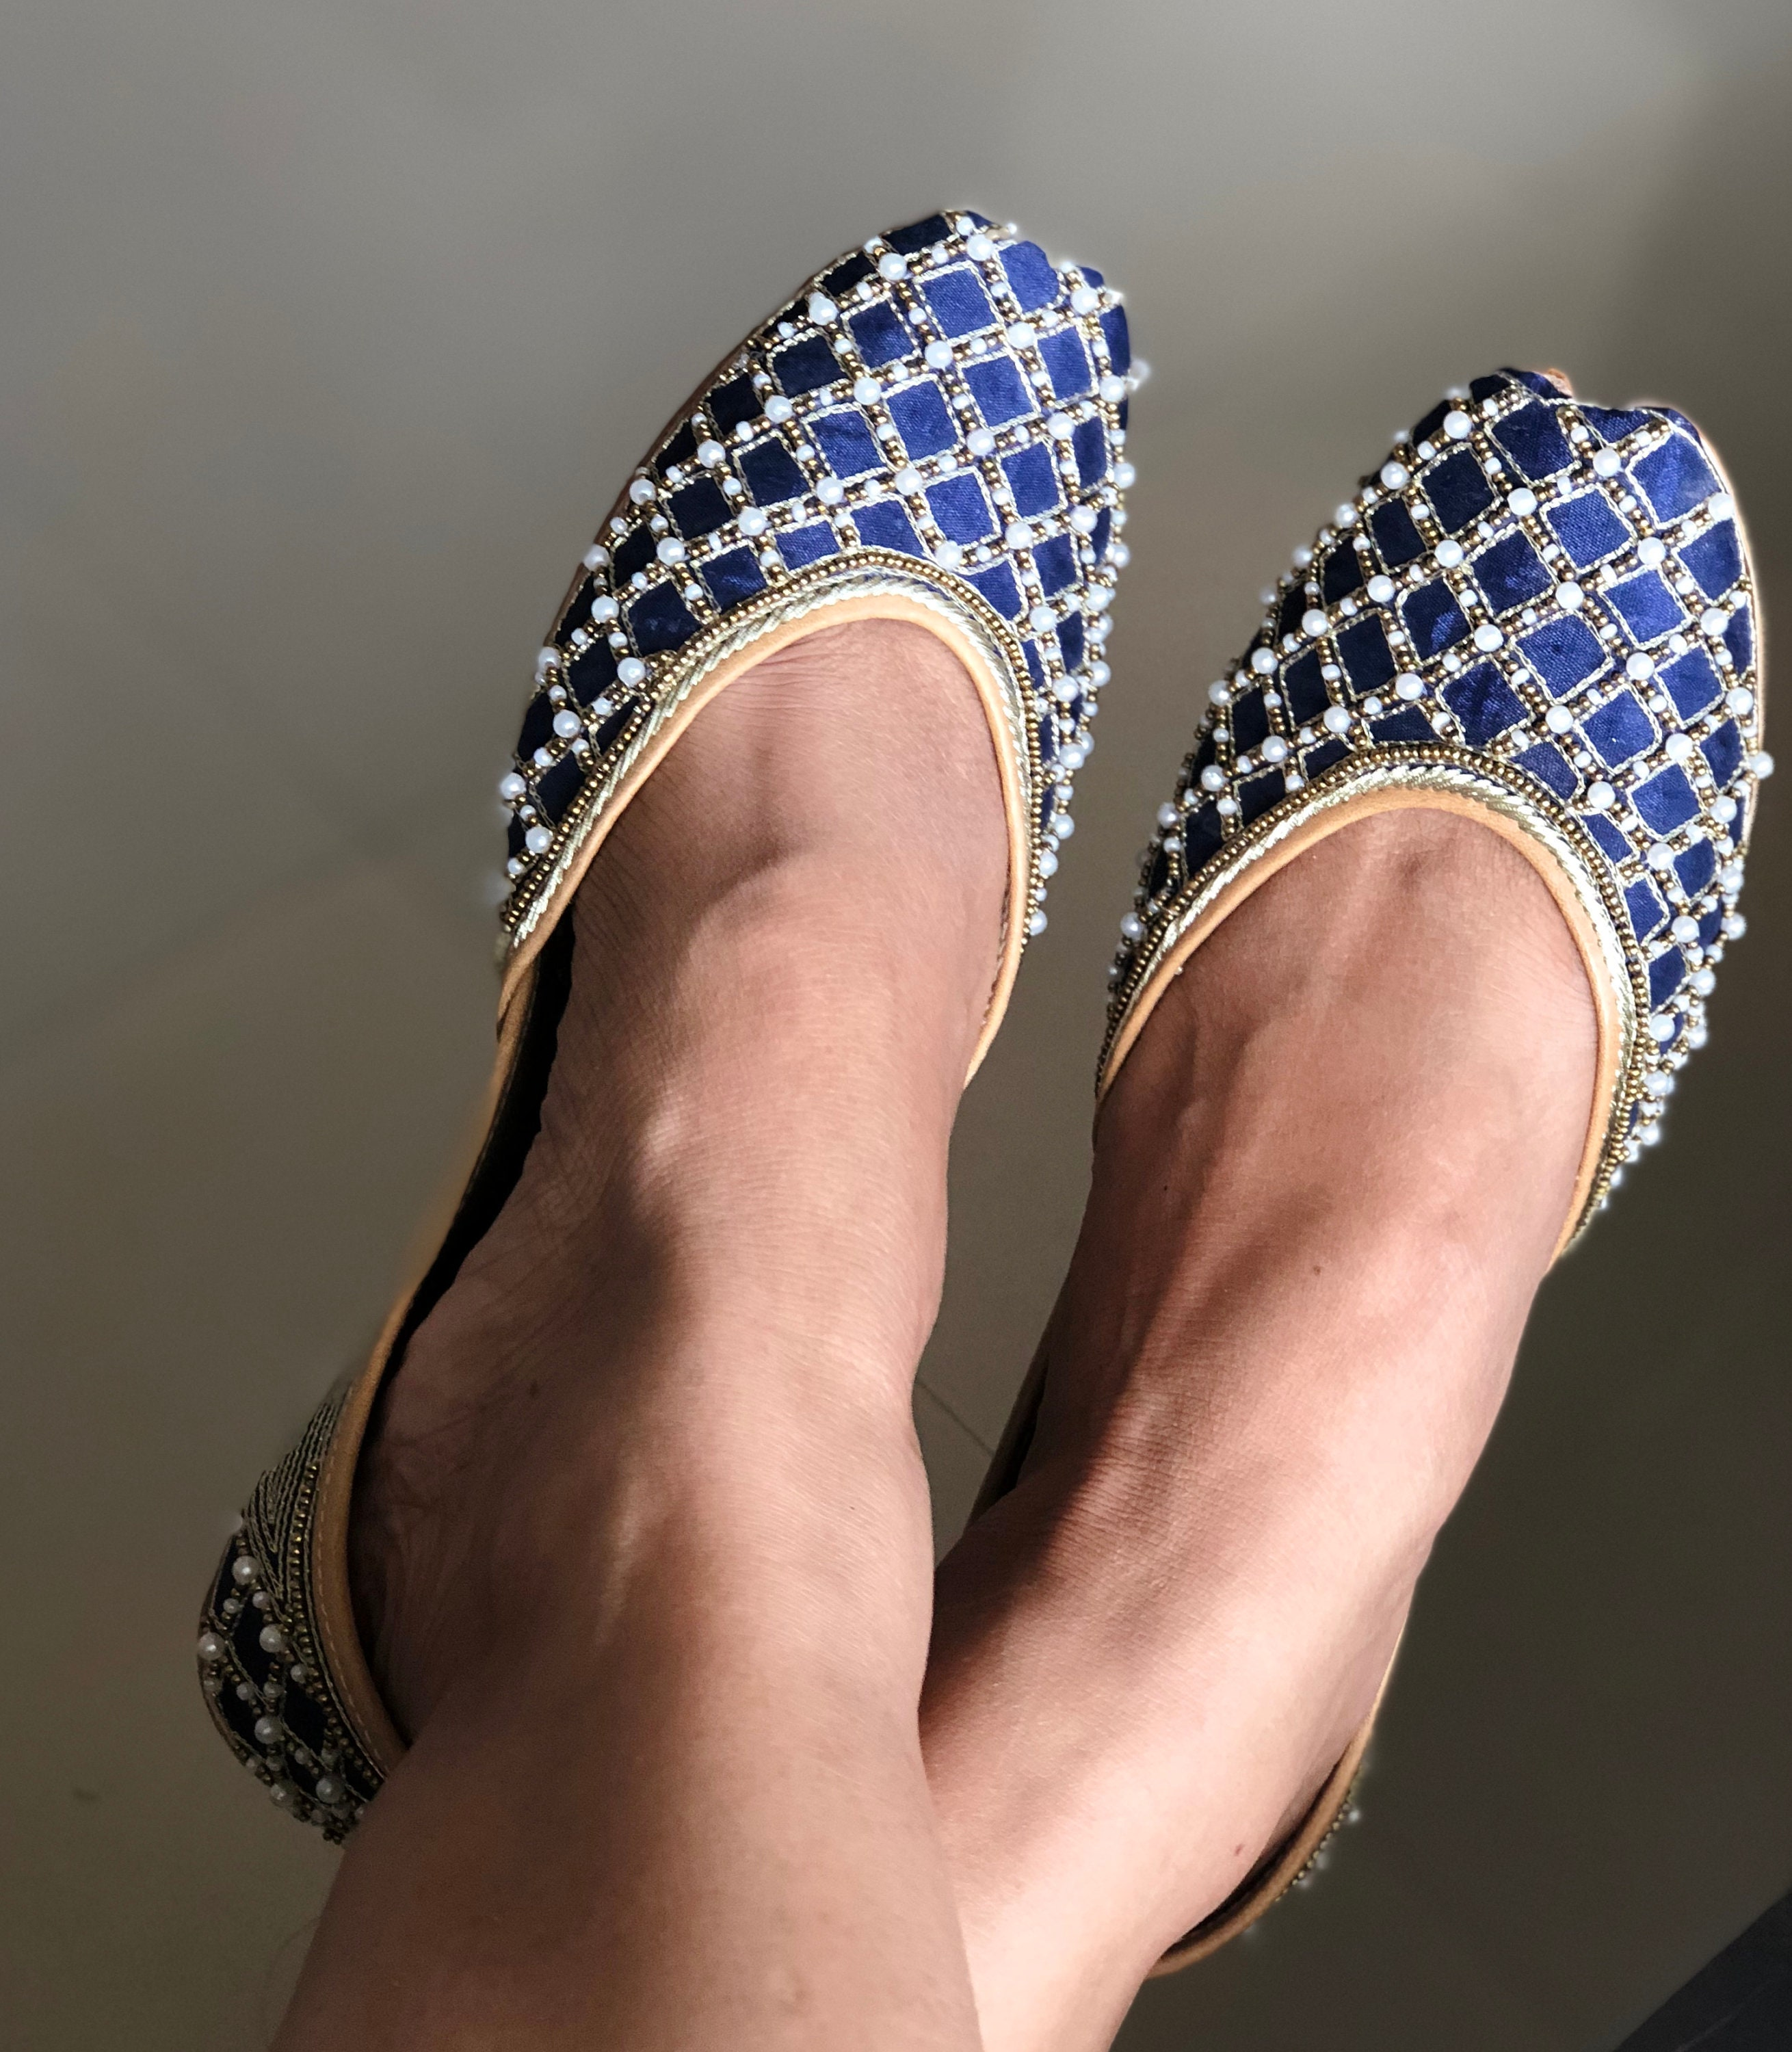 embellished  shoes, wedding shoes, bridal blue shoes,  beaded footwear, indian shoes / juttis/ mojaris / Khussa/jooties 57abee